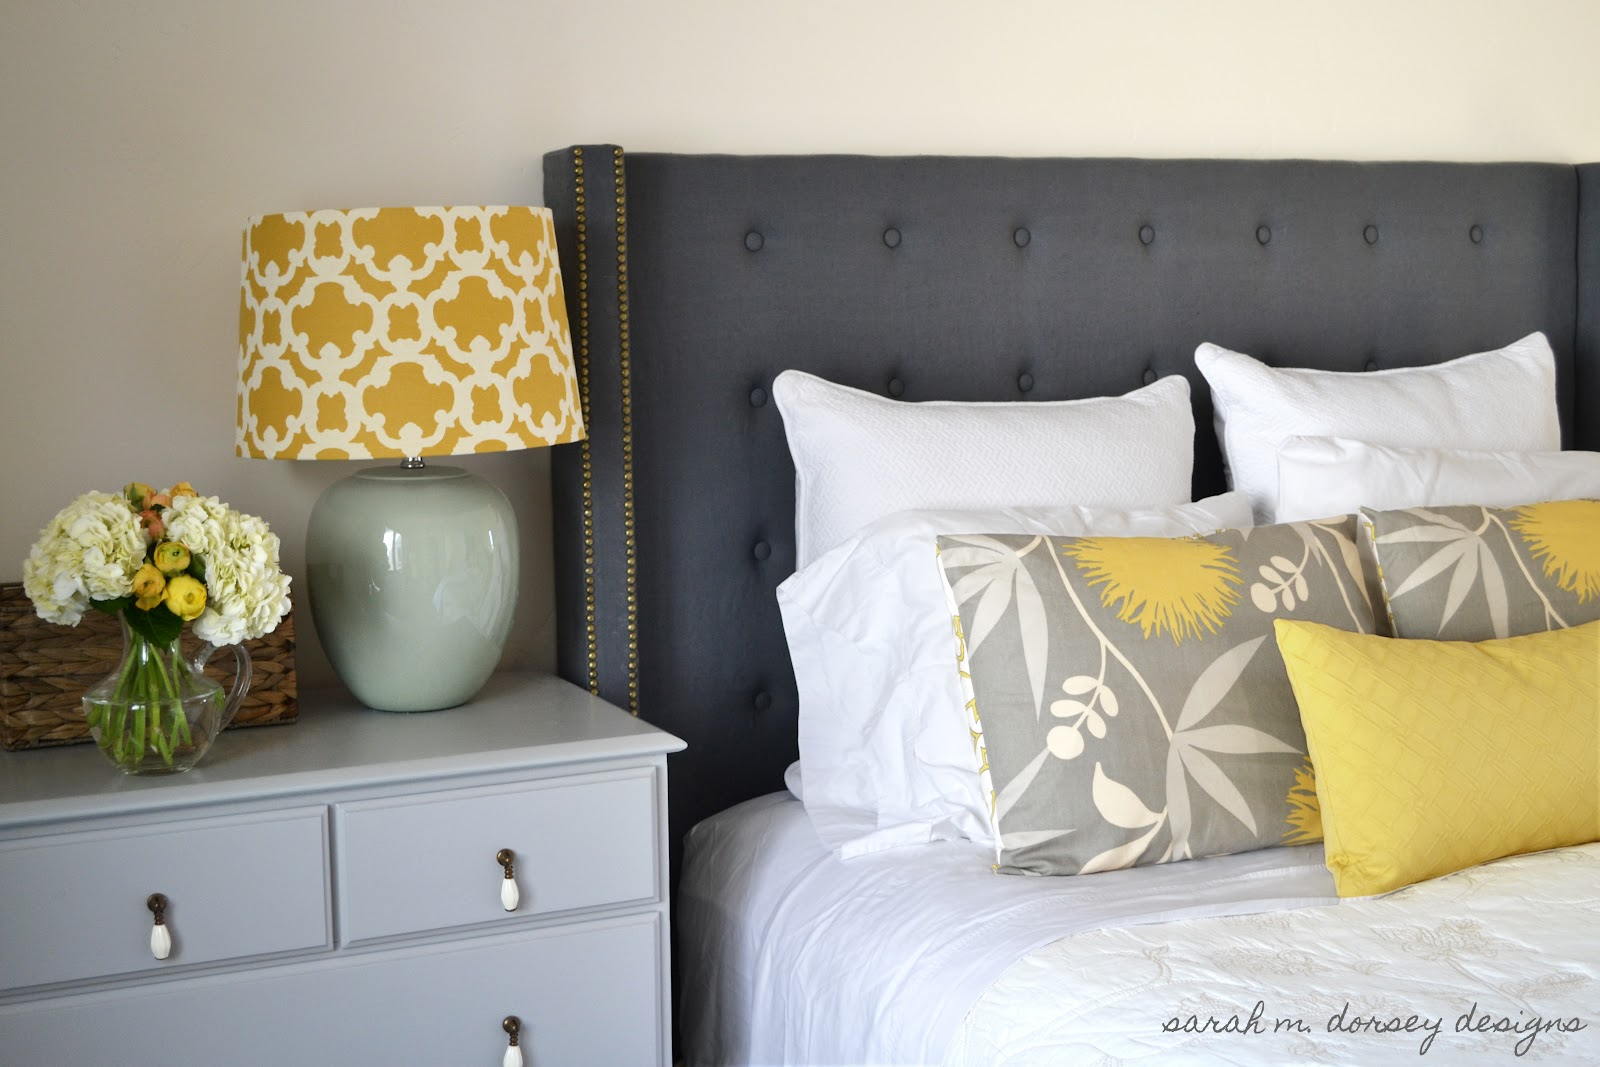 Diy Headboard Complete Dorsey Designs